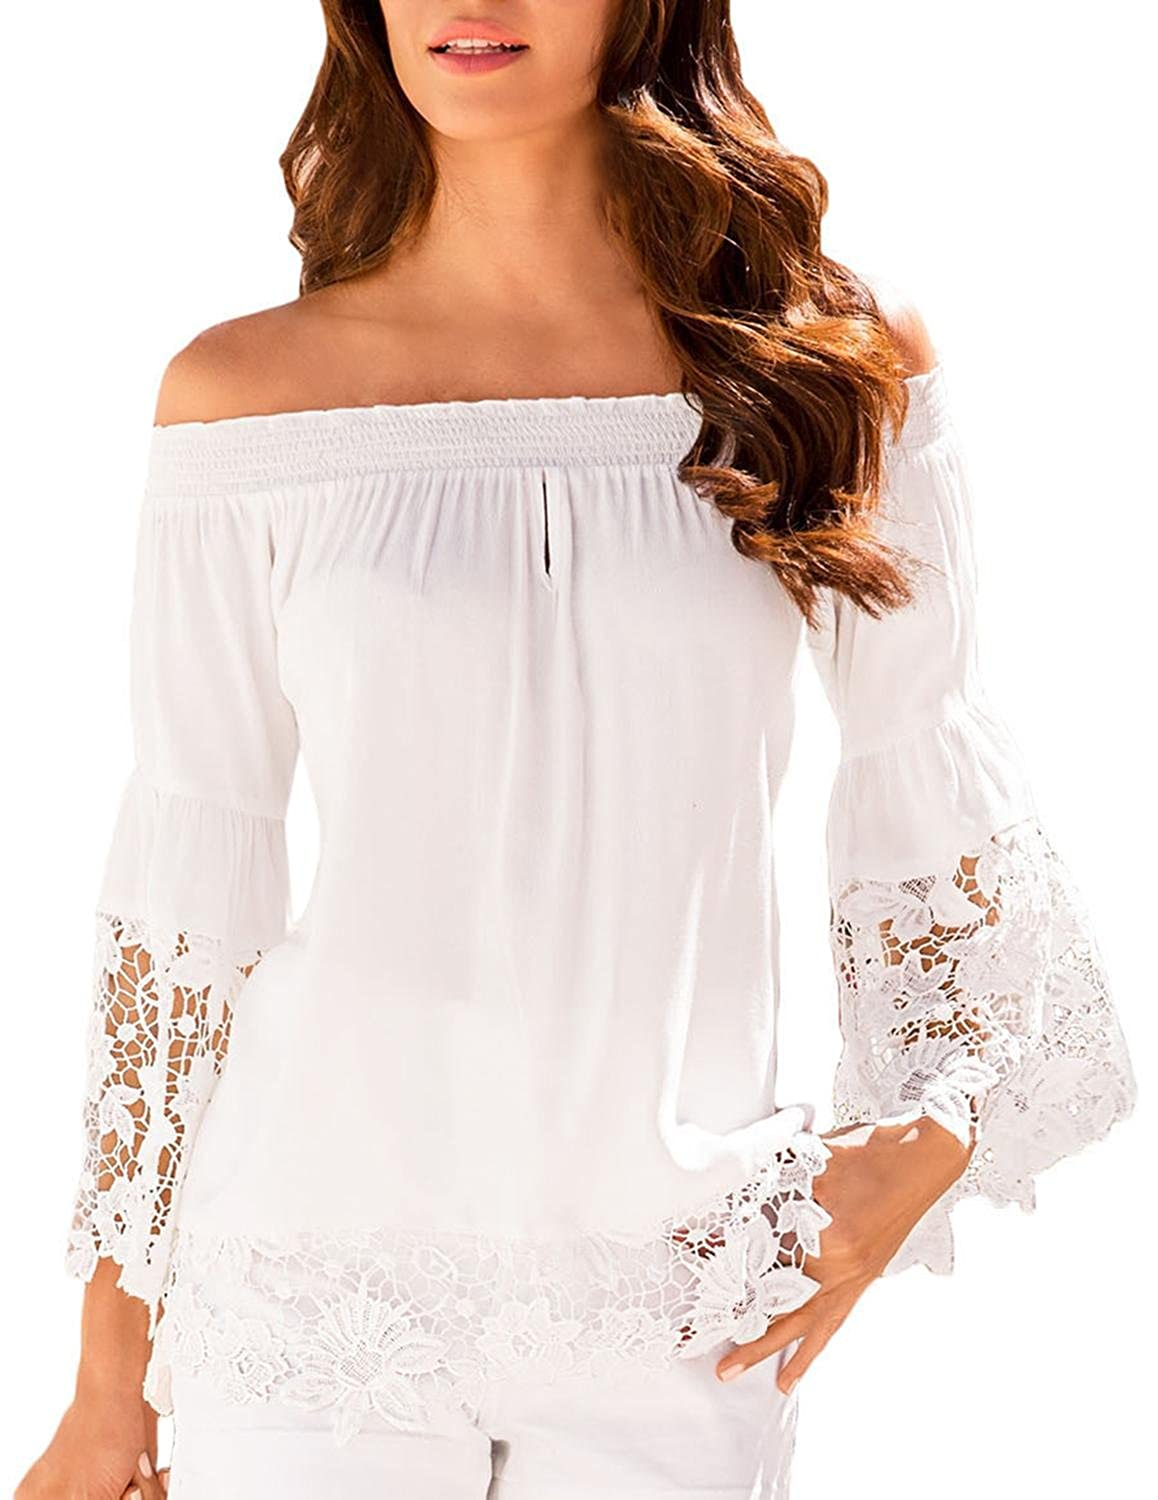 Fempool Woman White Off-The-Shoulder Lace Trim Blouse